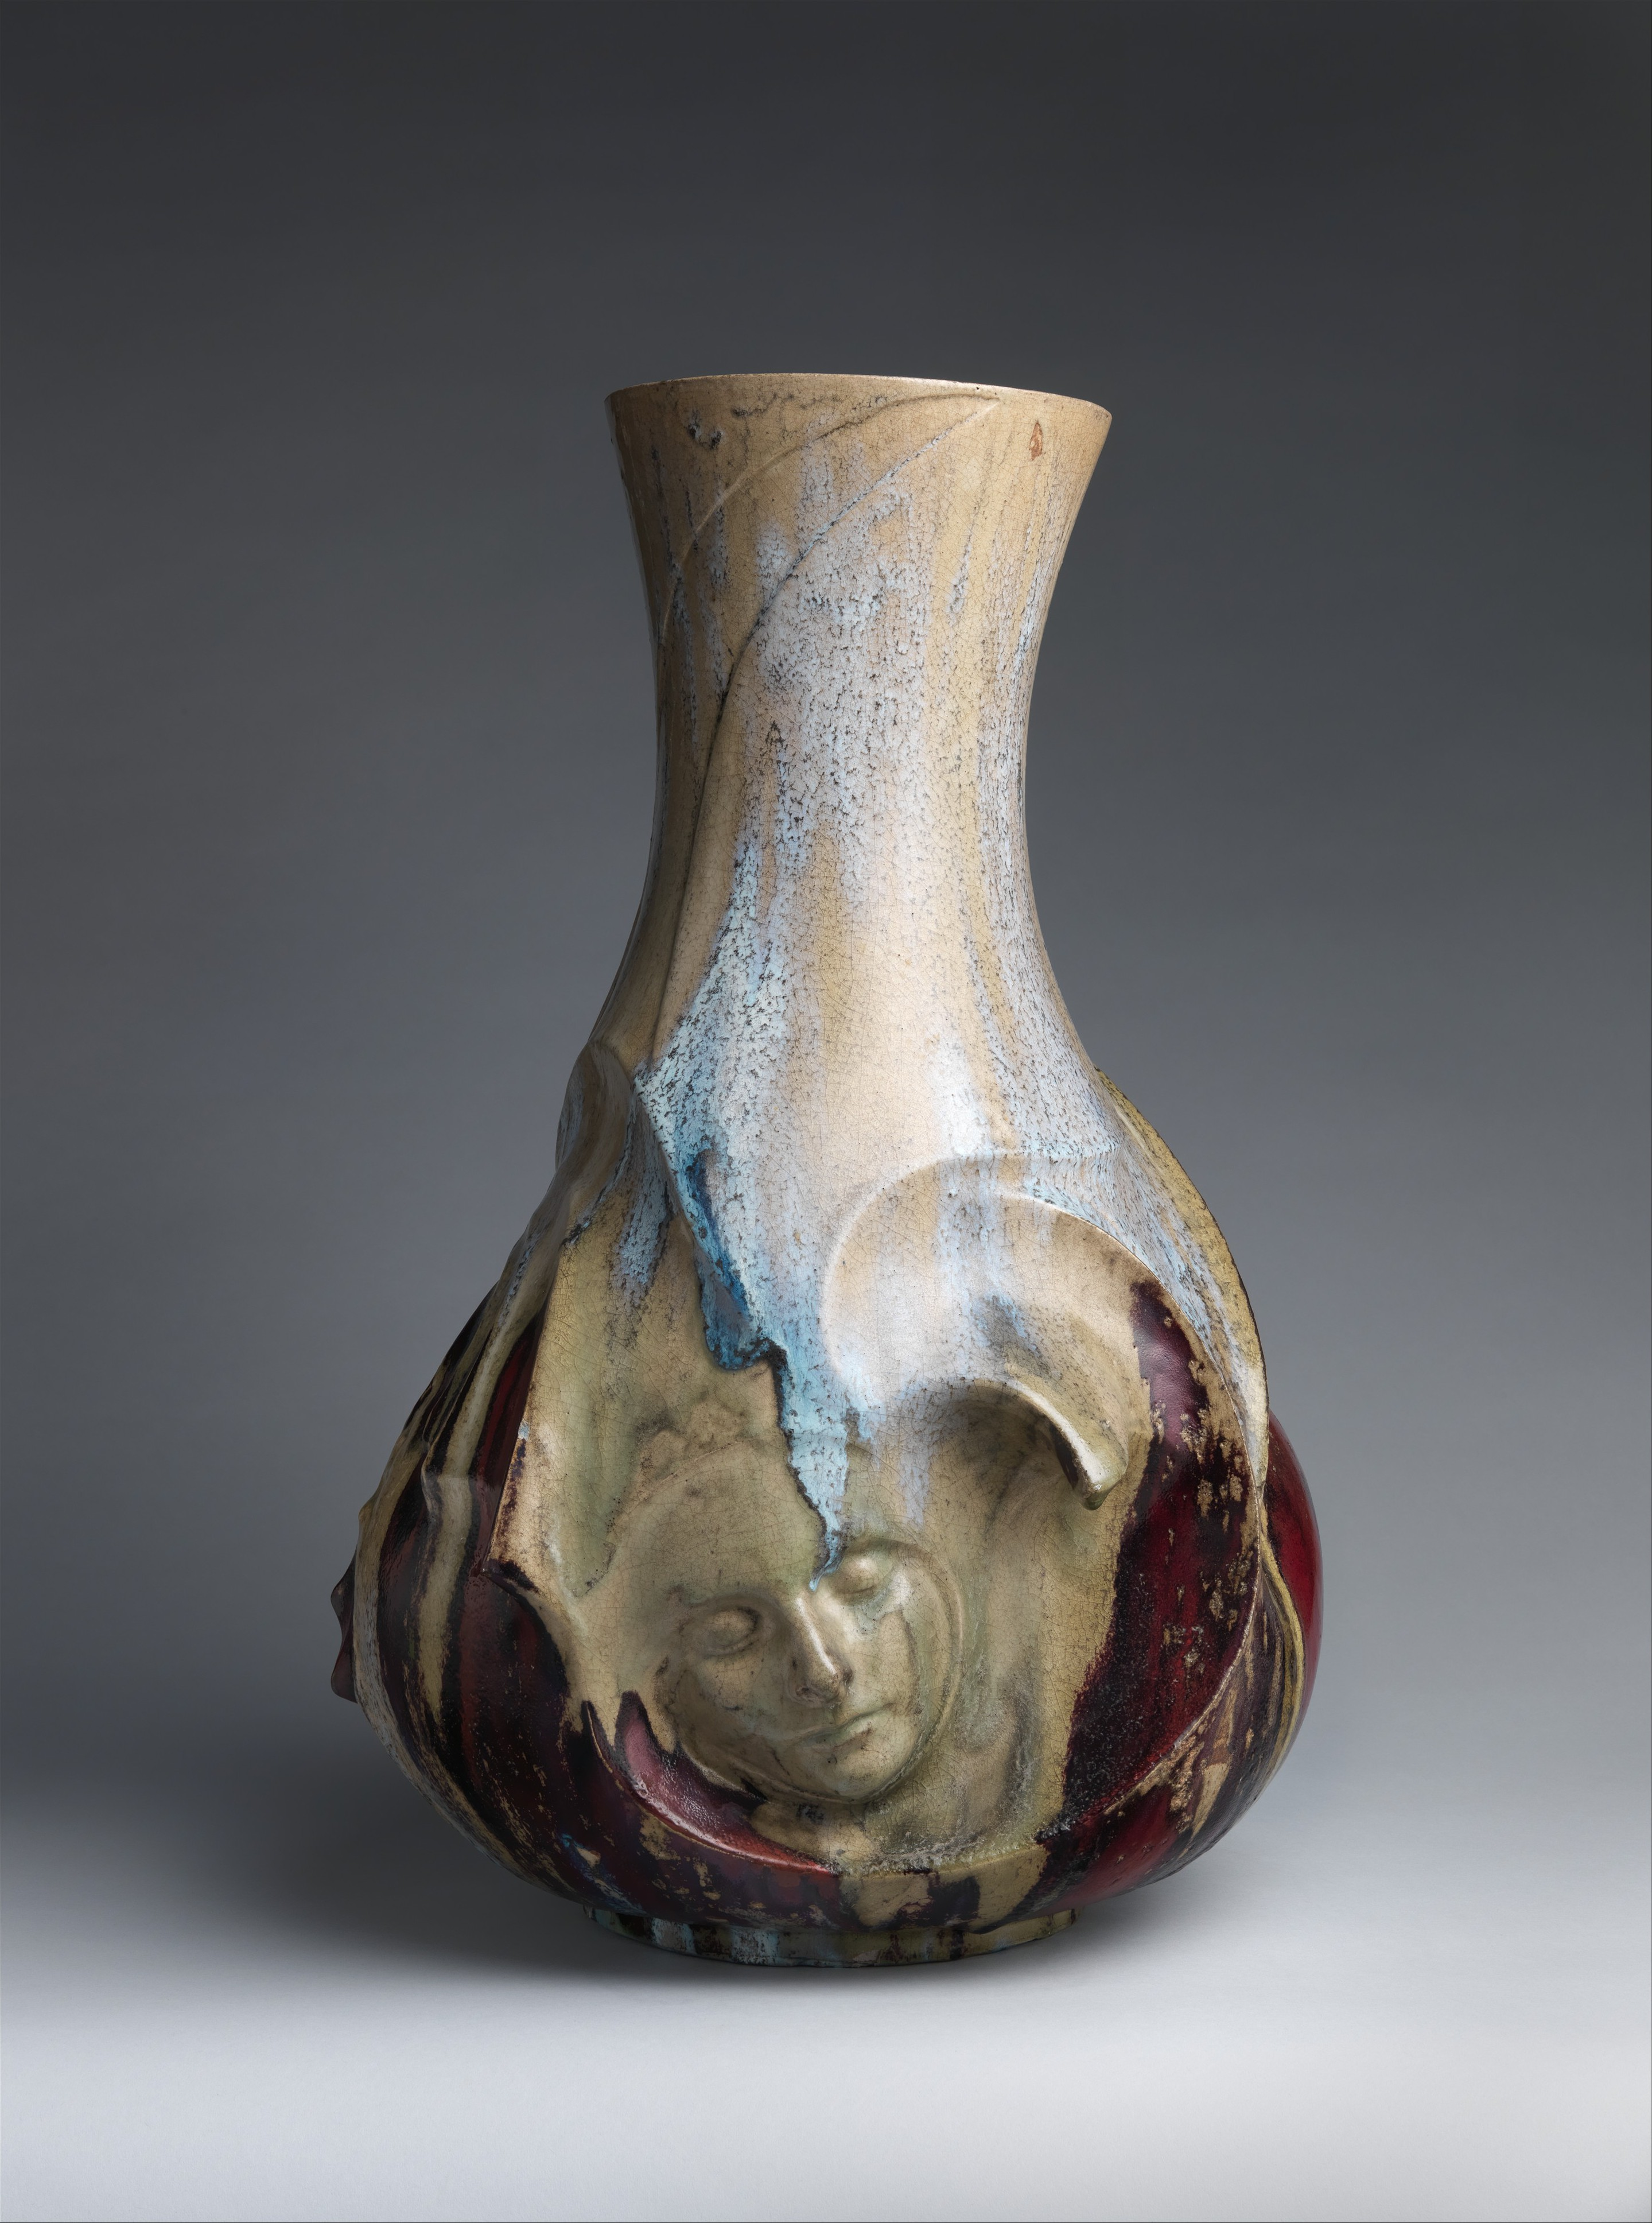 Pierre-Adrien Dalpayrat and Alphonse Voisin-Delacroix.  Vase with face, 1892–93.  Stoneware, 25 1/2 × 16 7/8 × 16 in. Object Location/Image Source:  The Metropolitan Museum of Art.